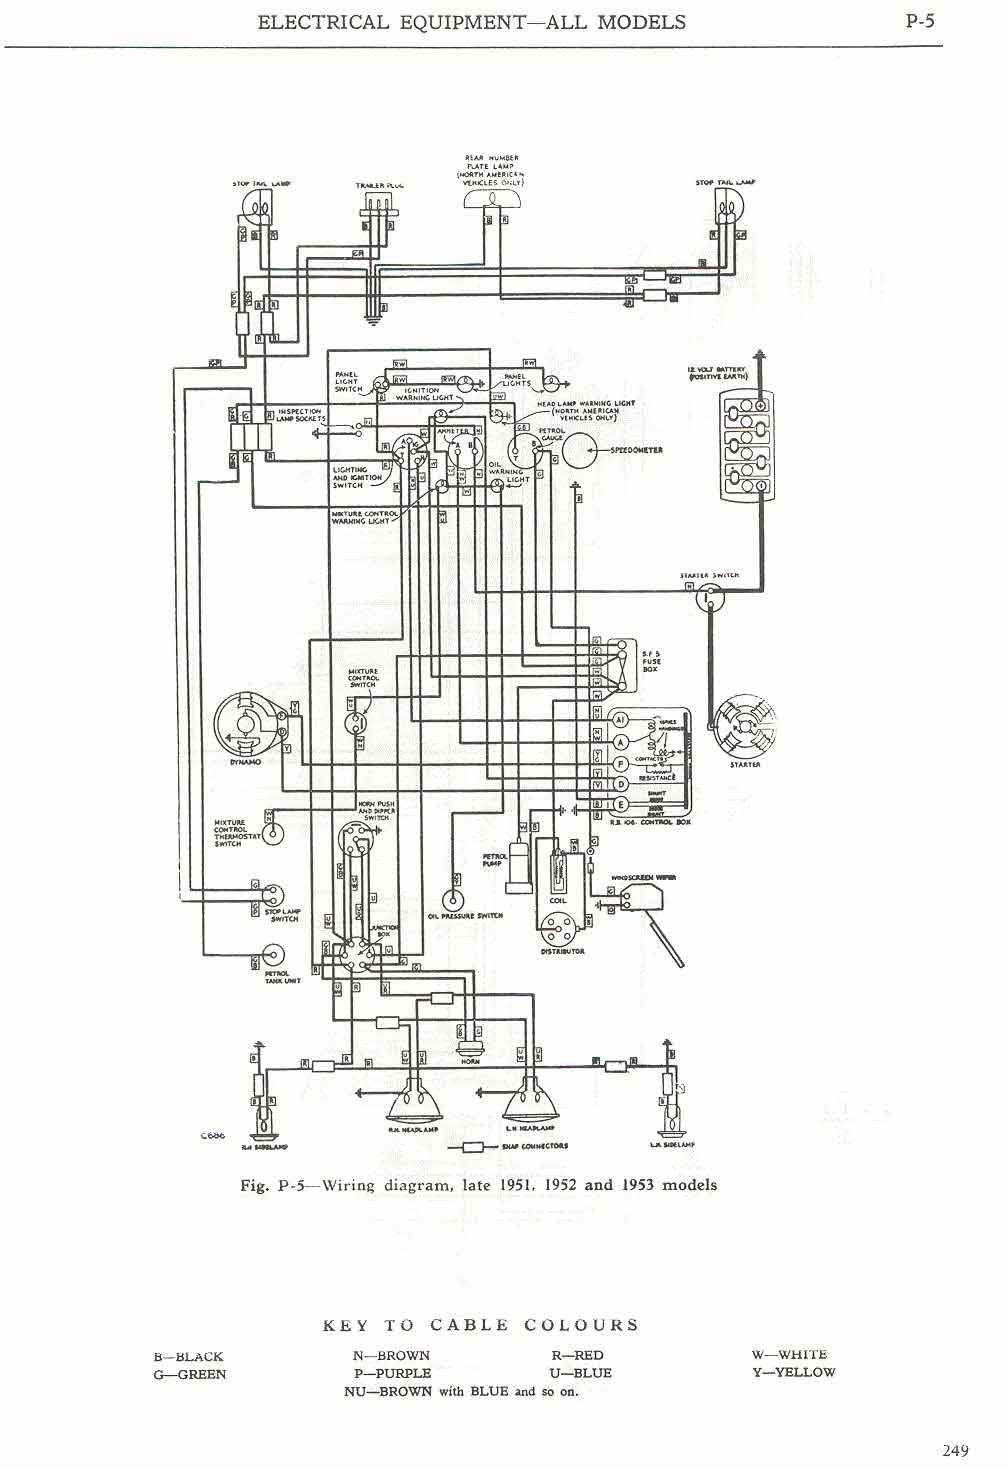 peugeot xr6 wiring diagram wiring diagram services u2022 rh zigorat co Light Switch Wiring Diagram peugeot xr6 50cc wiring diagram